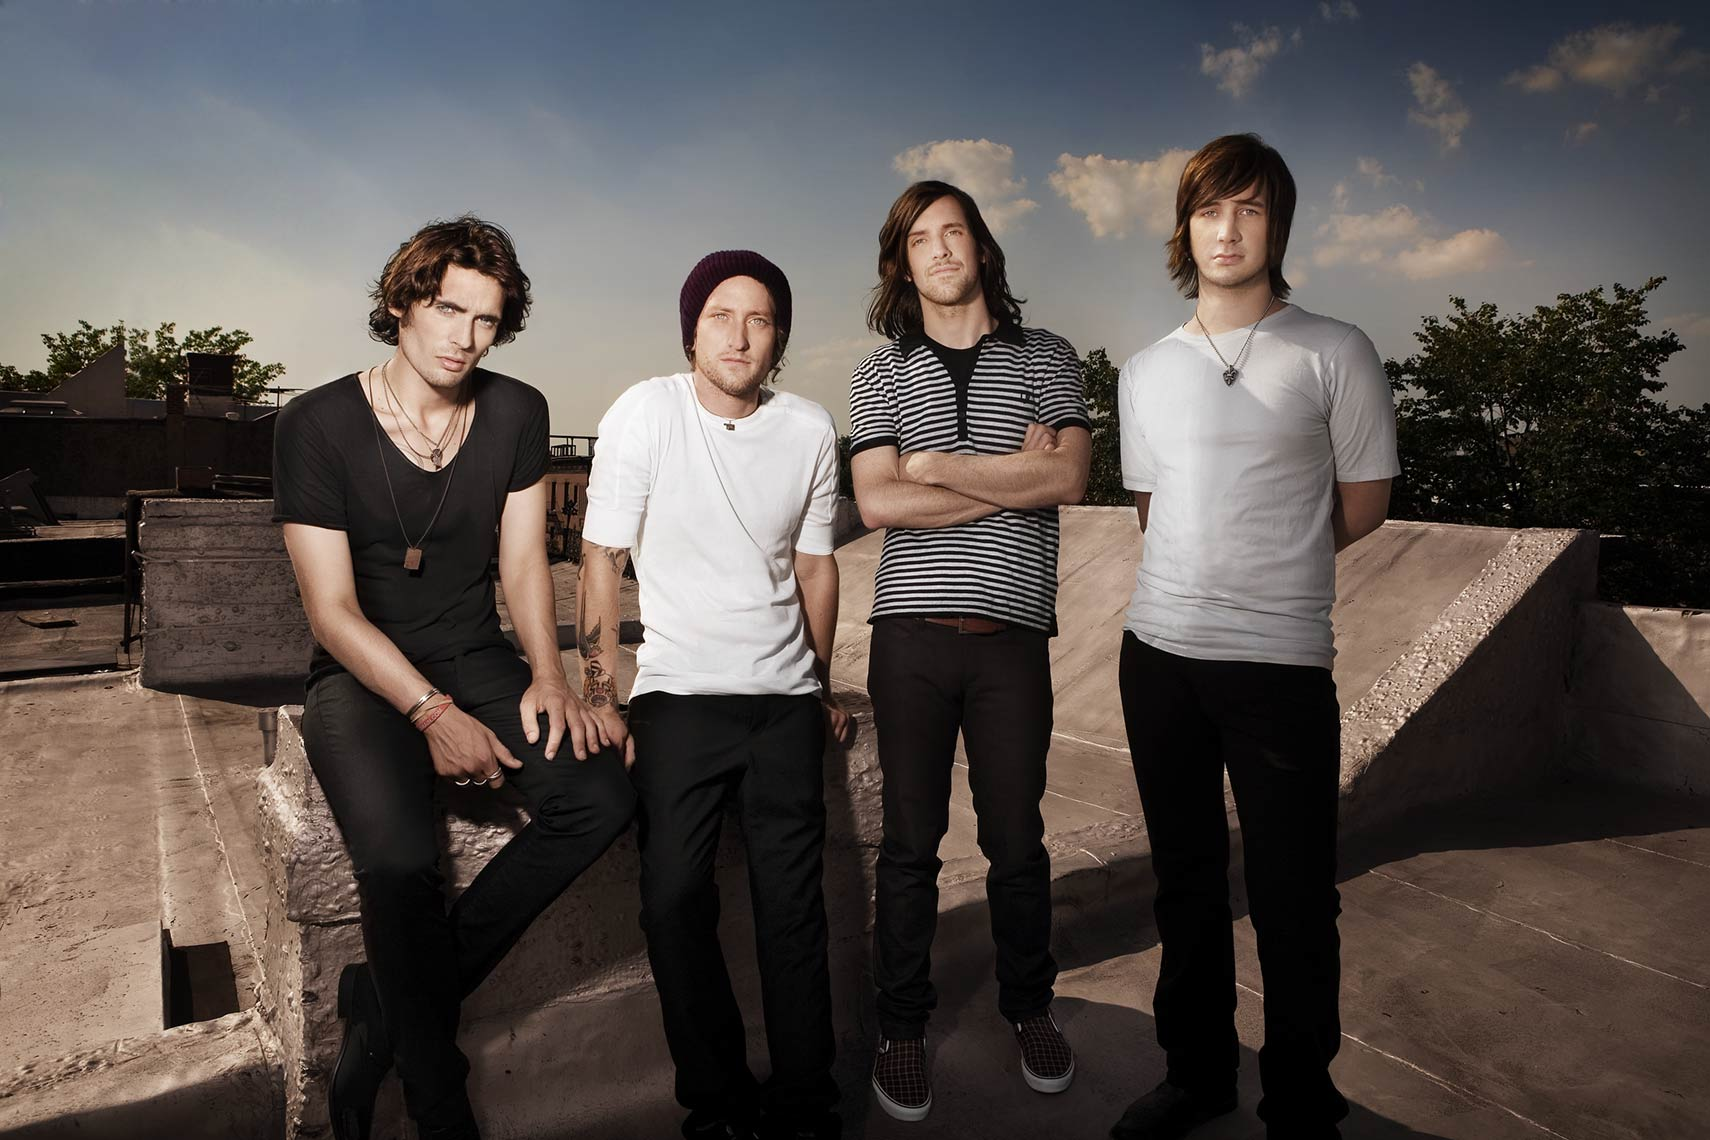 All American Rejects by Carrie Schechter for Interscope Records